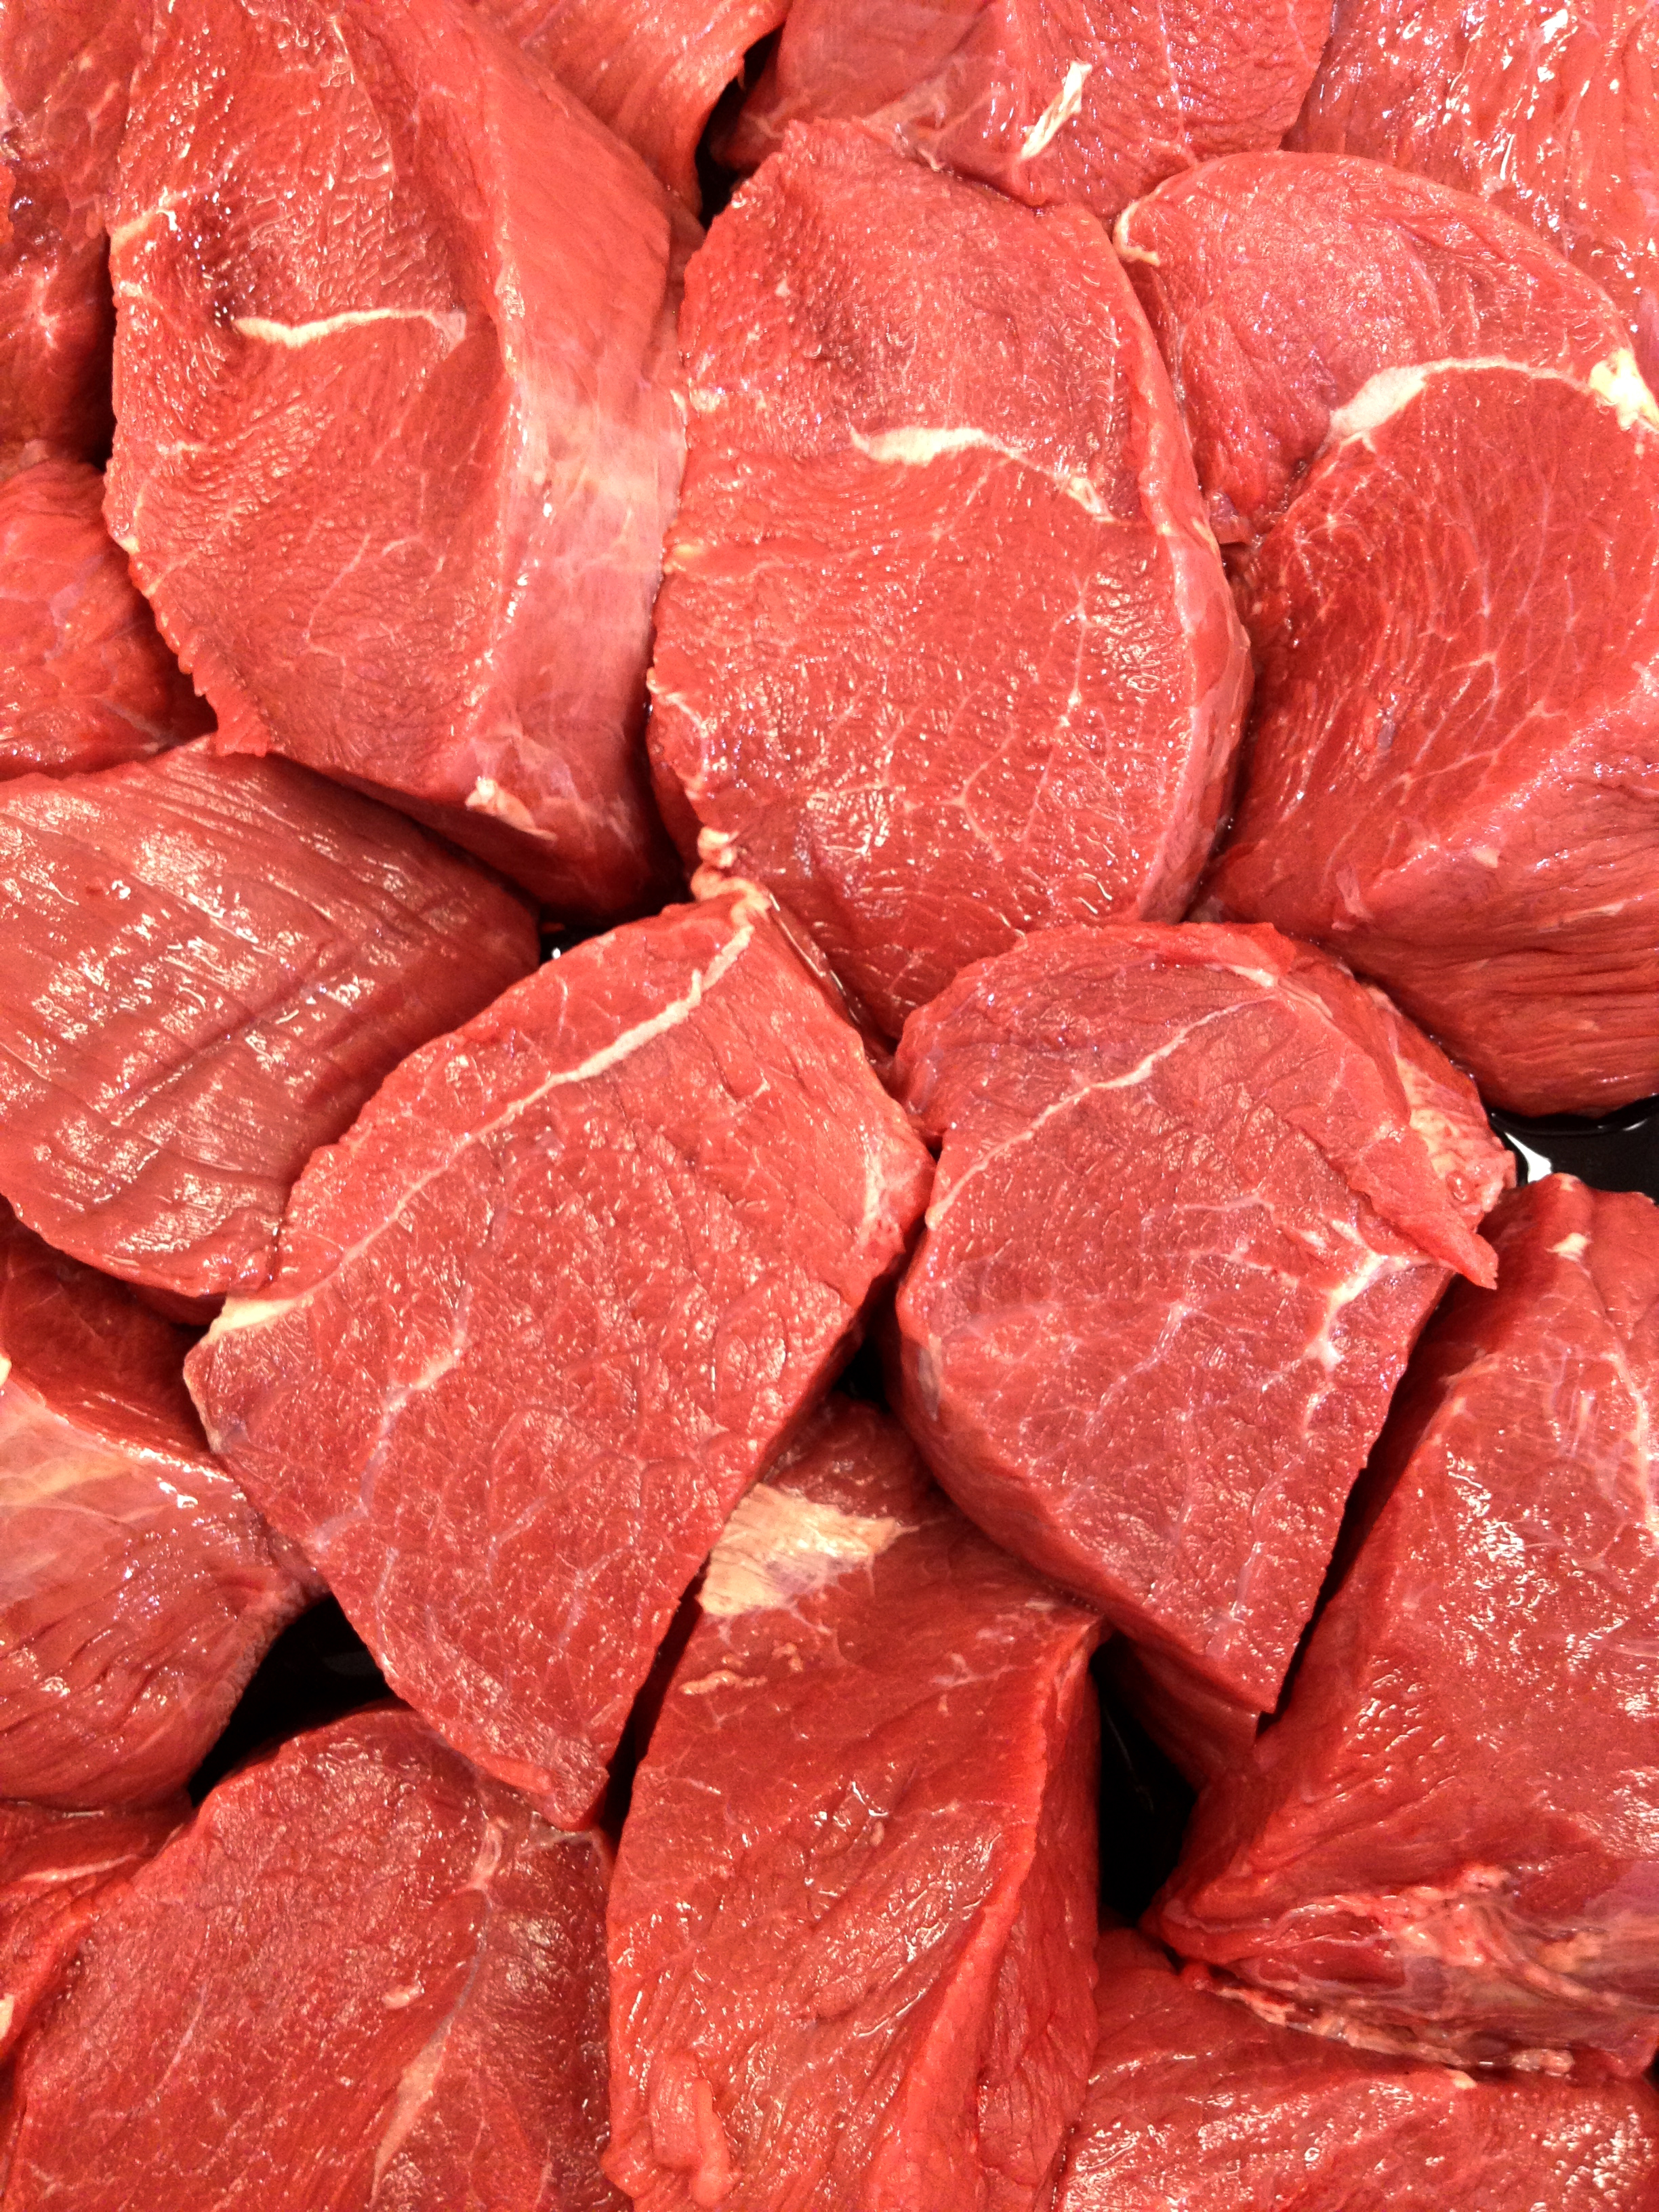 raw meat background